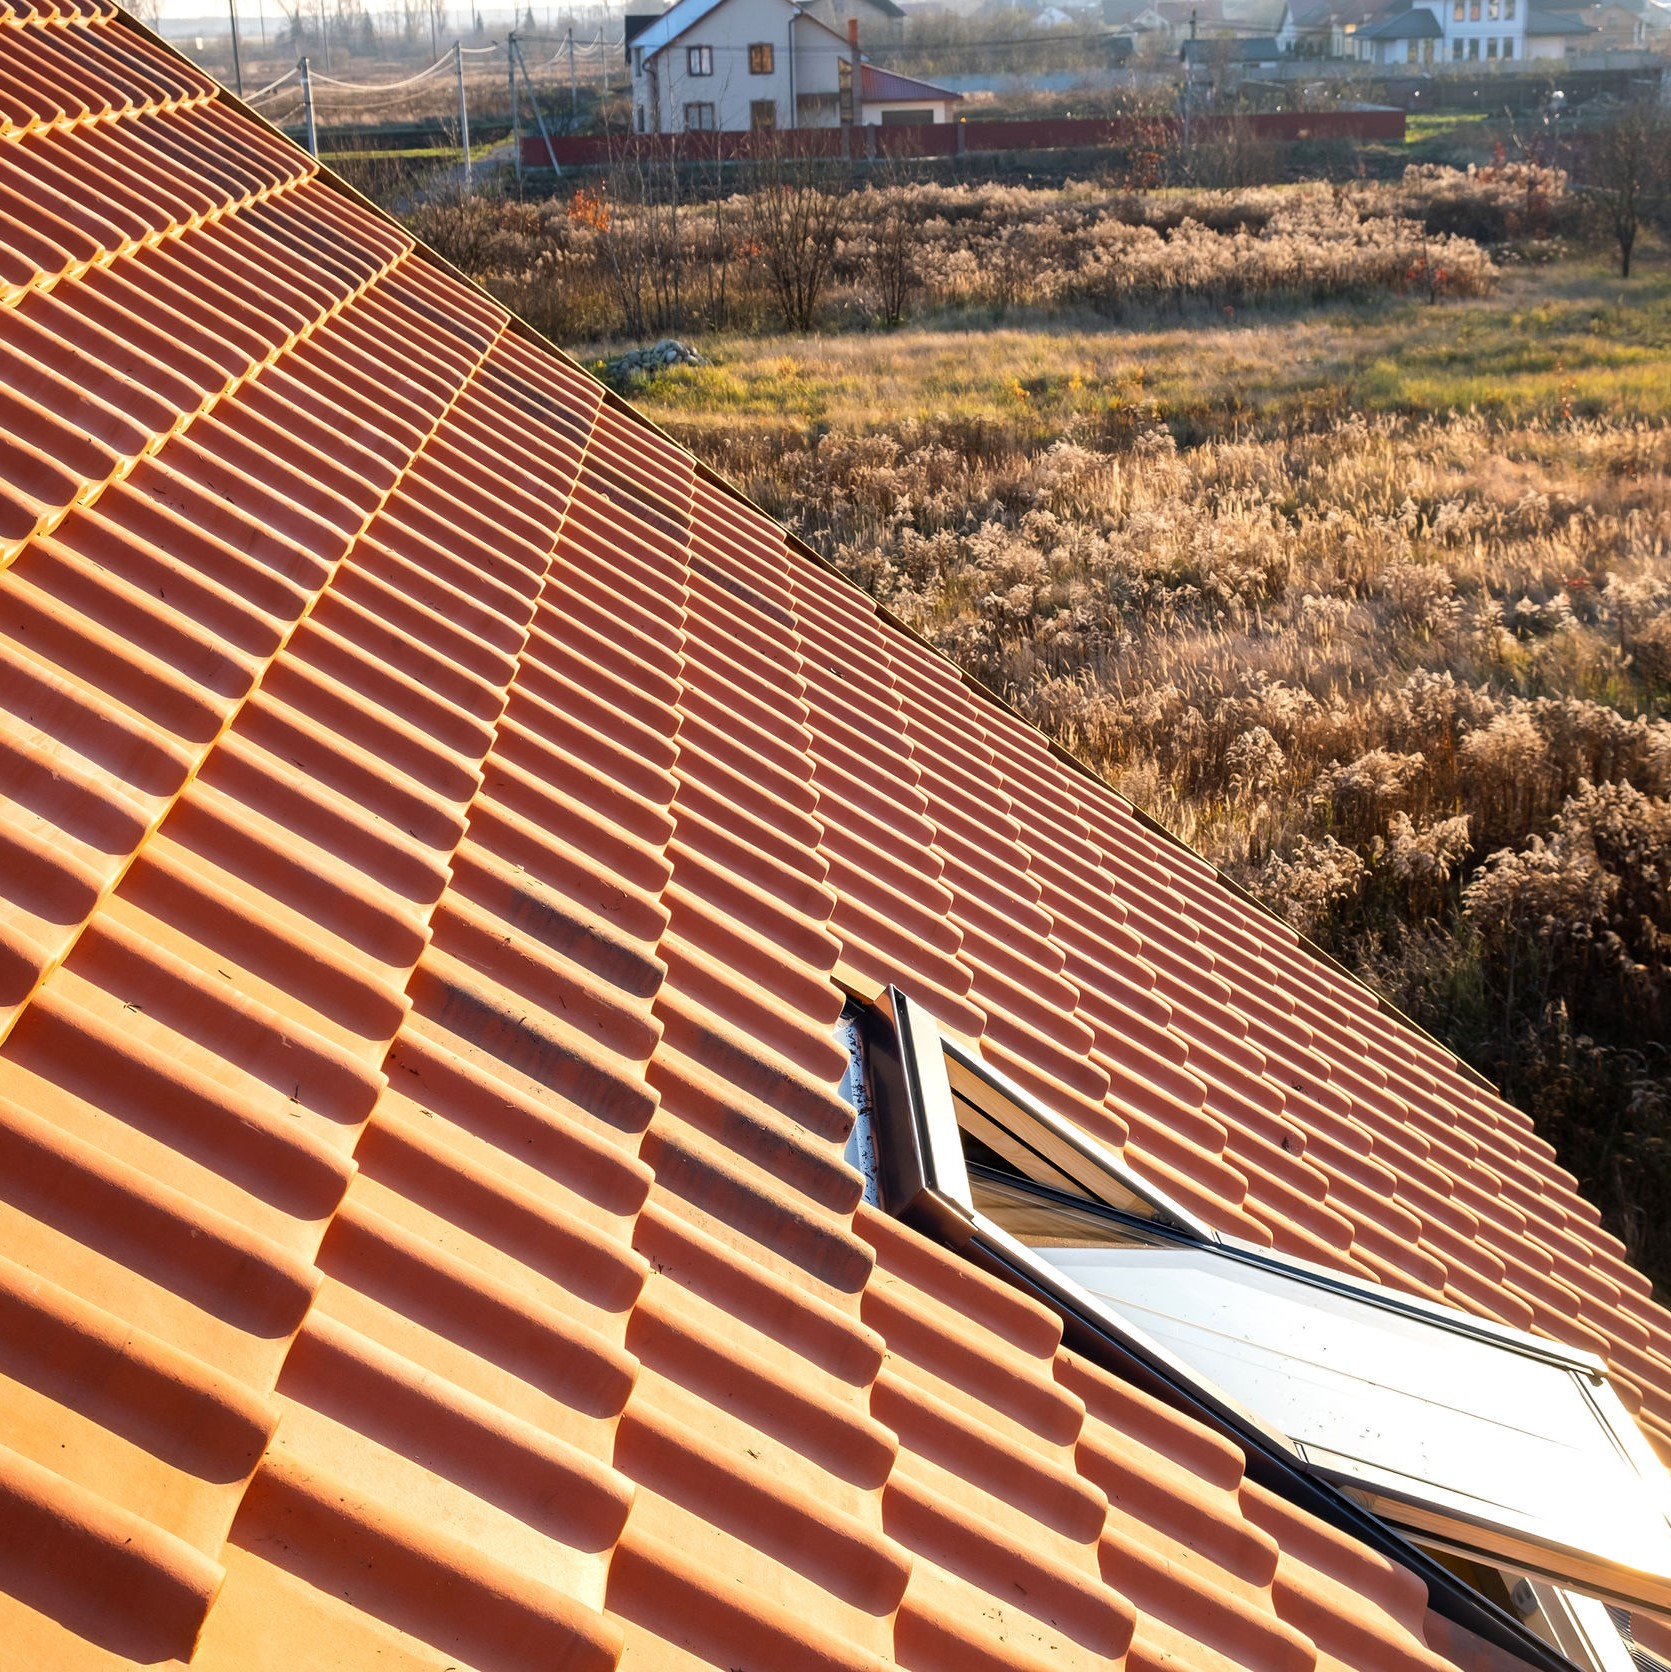 A tile roof on a home in the country.